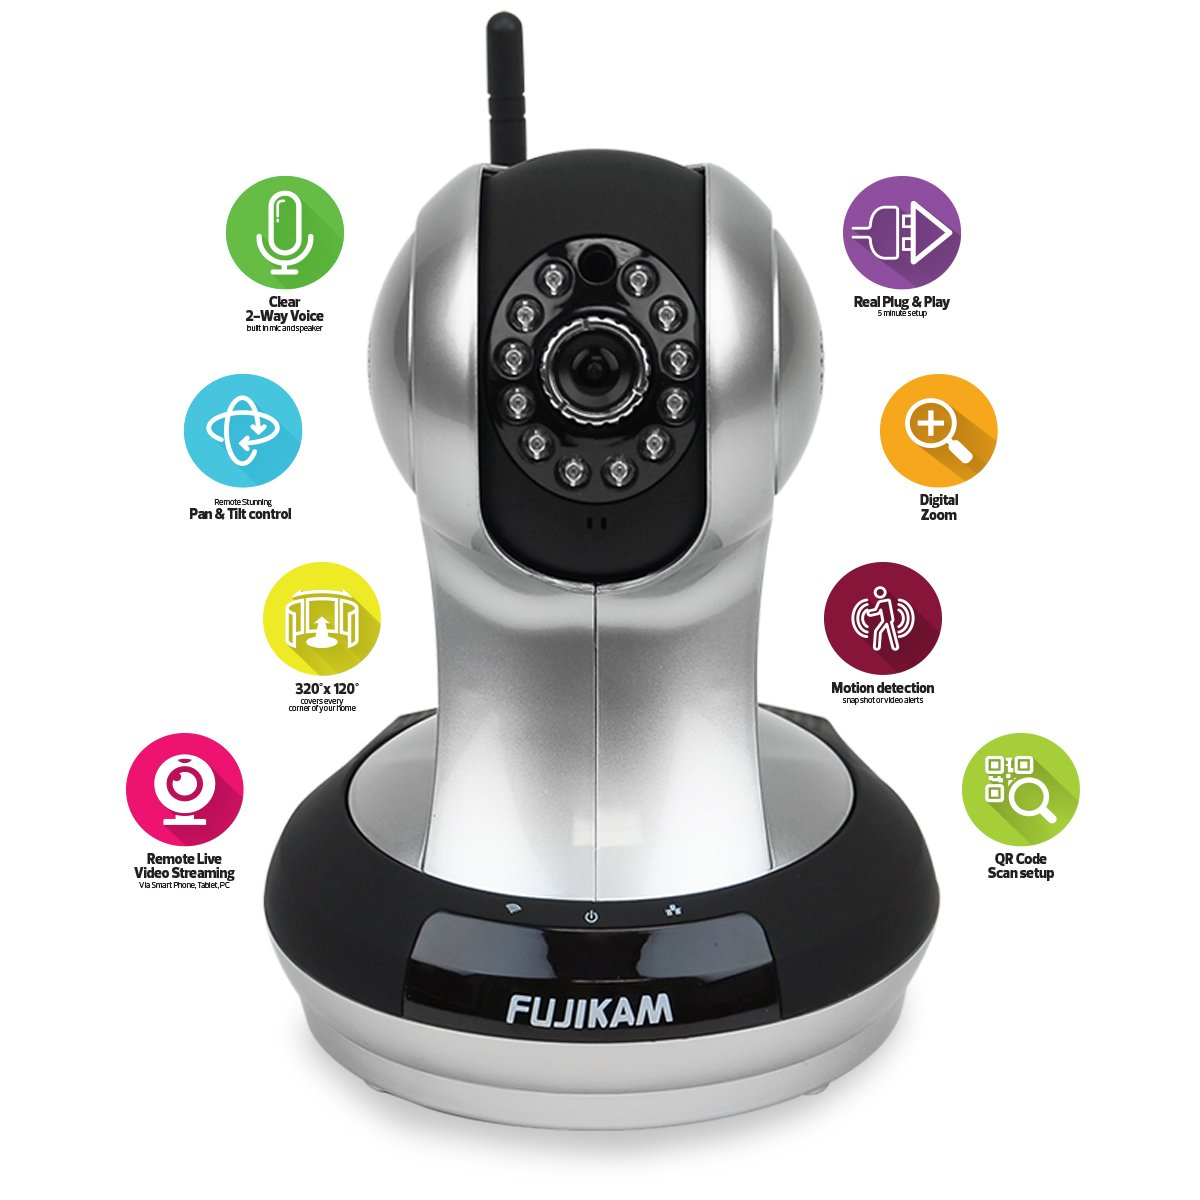 Fujikam Video Monitoring security camera